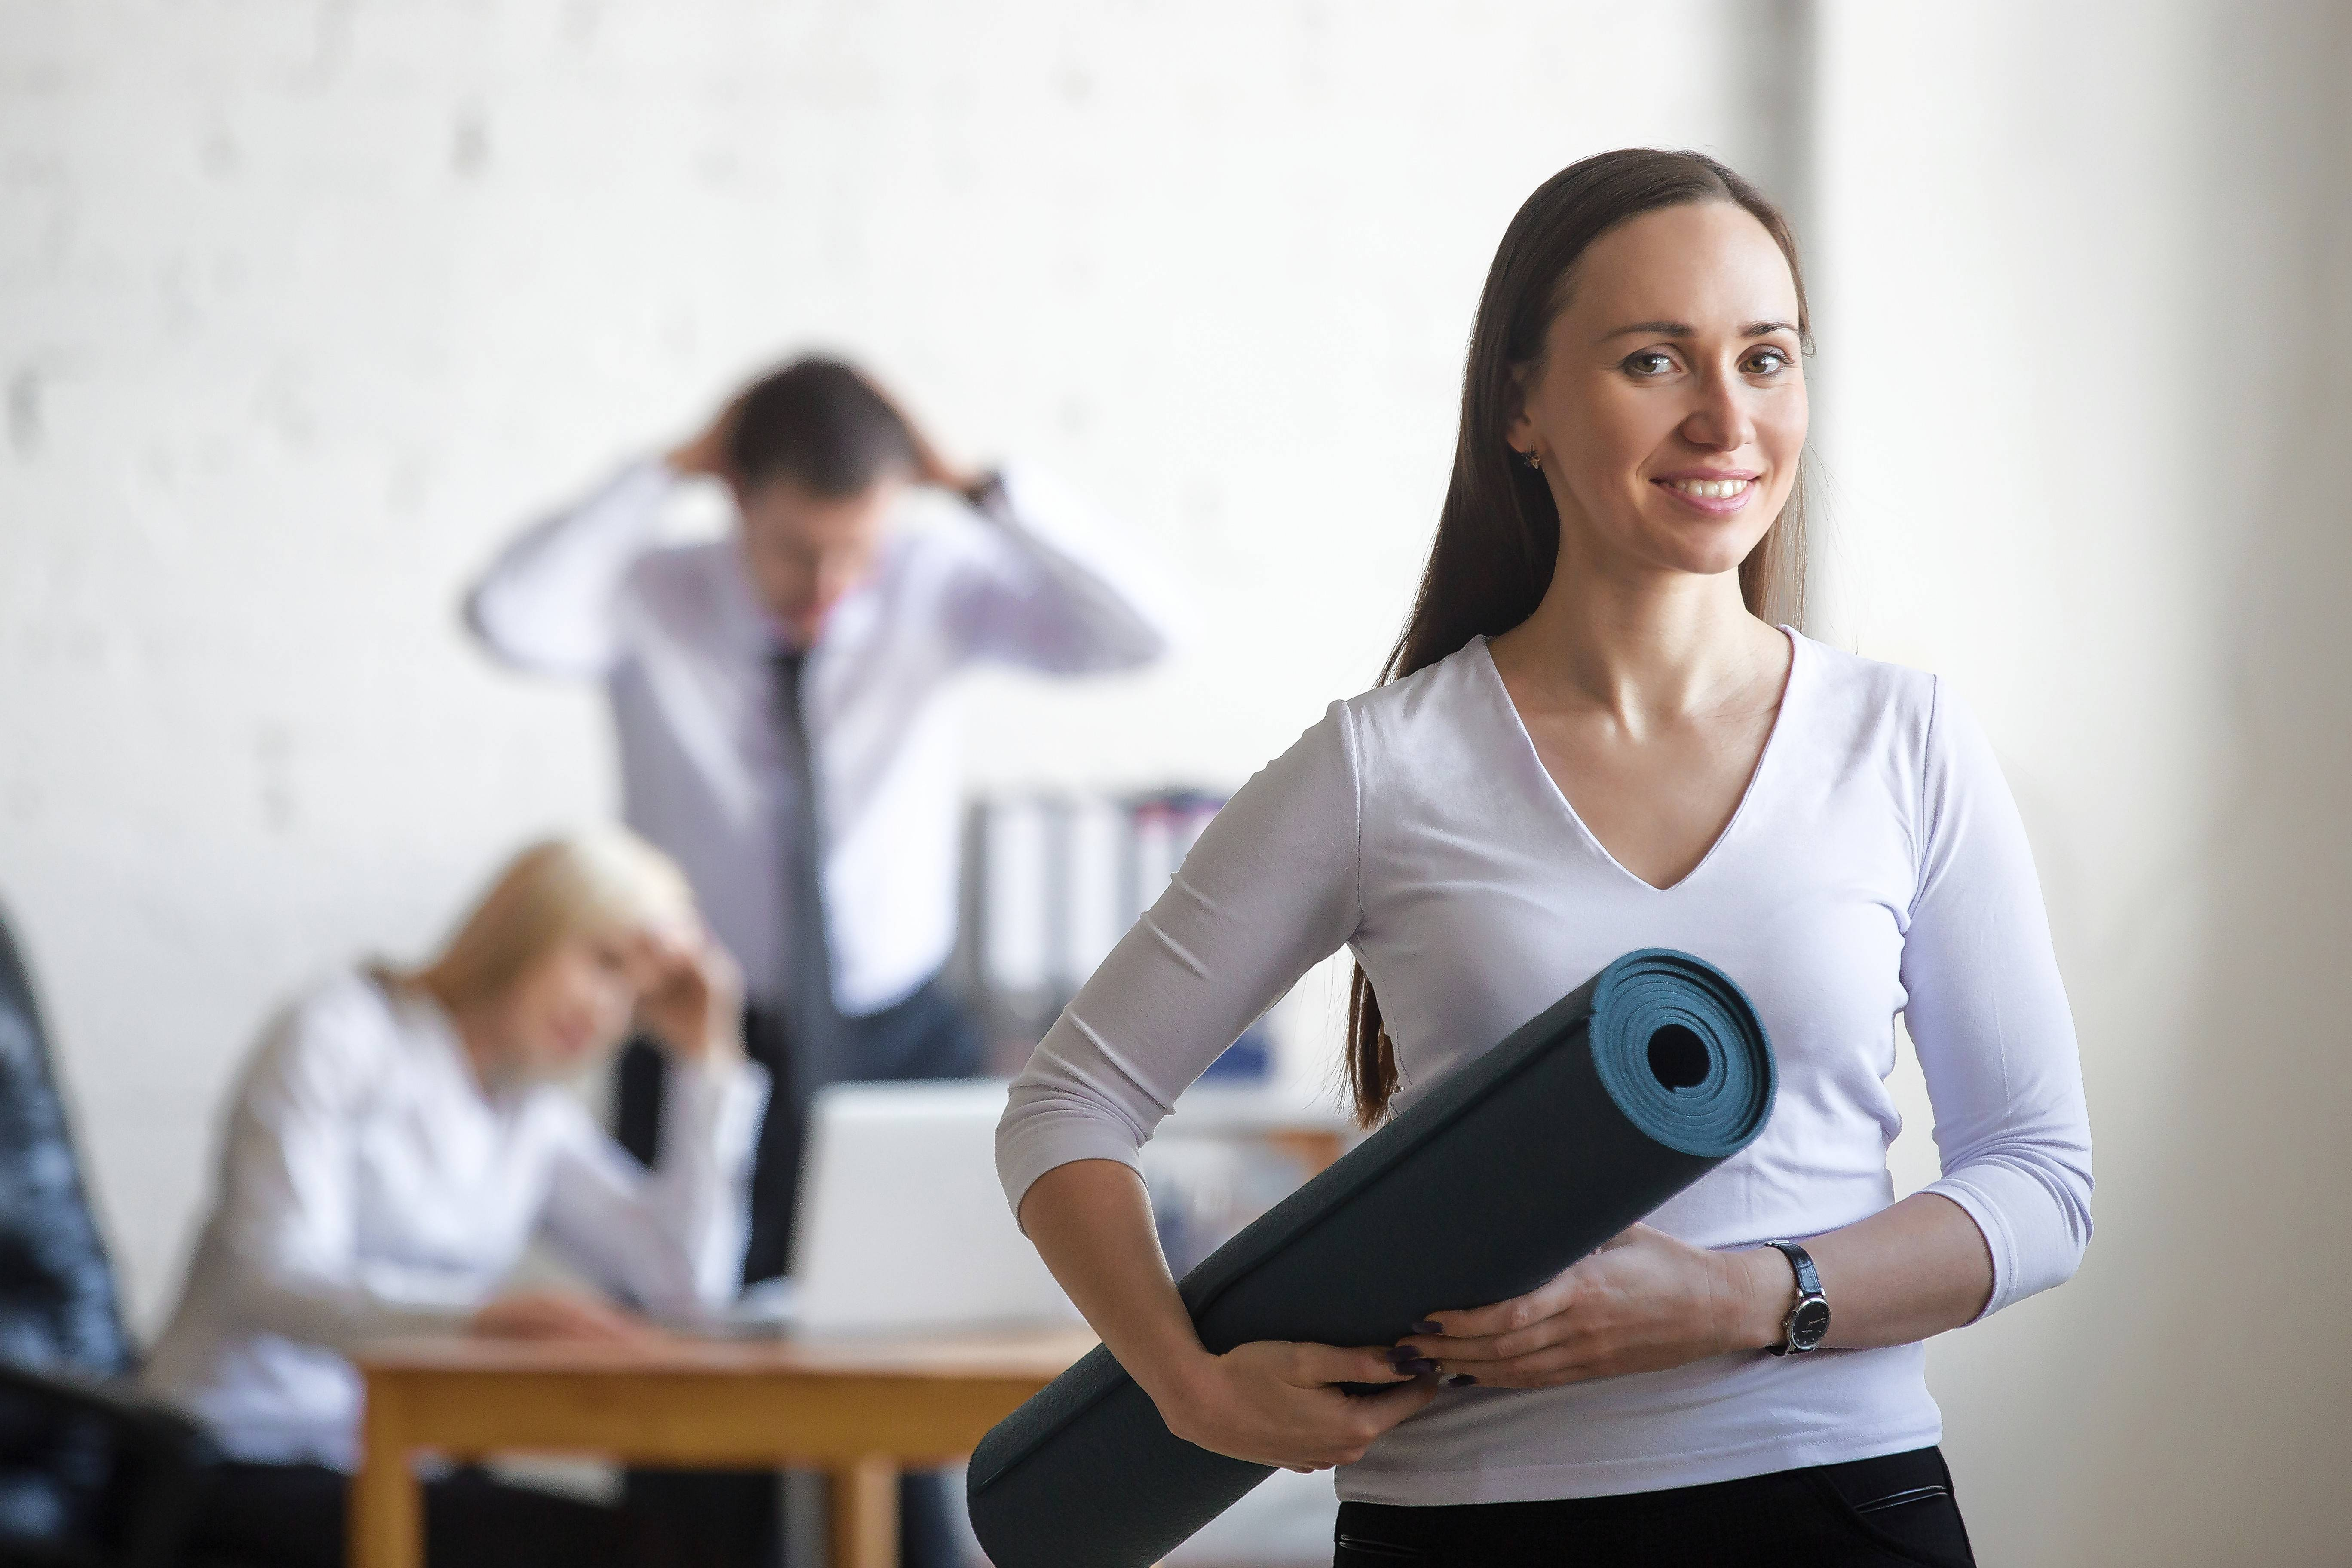 Companies across the country are establishing workplace wellness programs that encourage employees to work out, stop smoking and generally adopt healthier lifestyles.